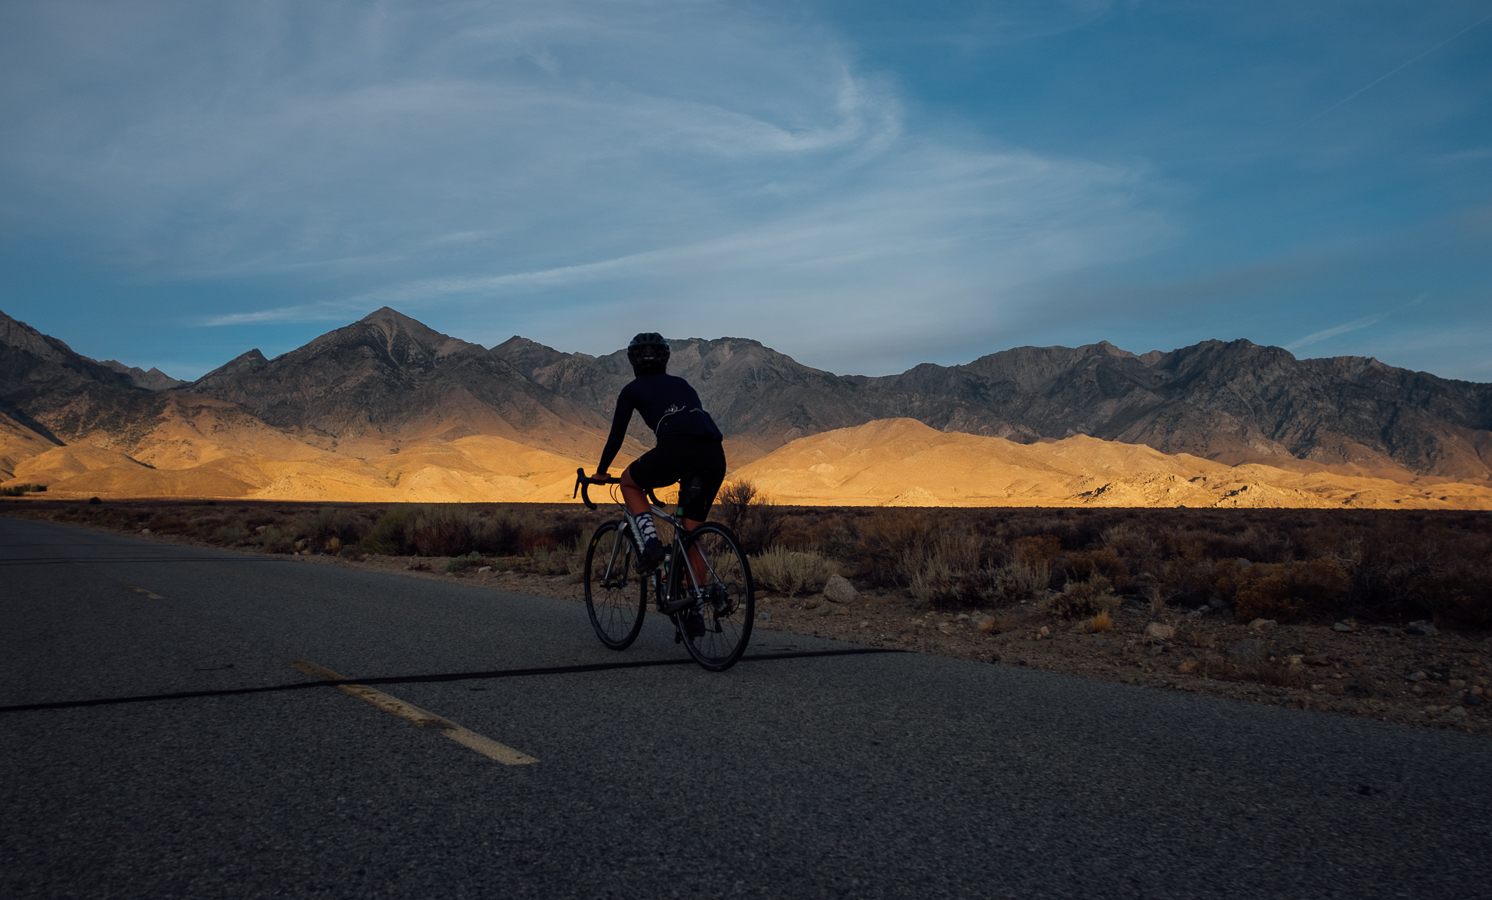 Sunrise ride to Onion Valley, California - Fuji X-T10 + XF 18mm f2.0